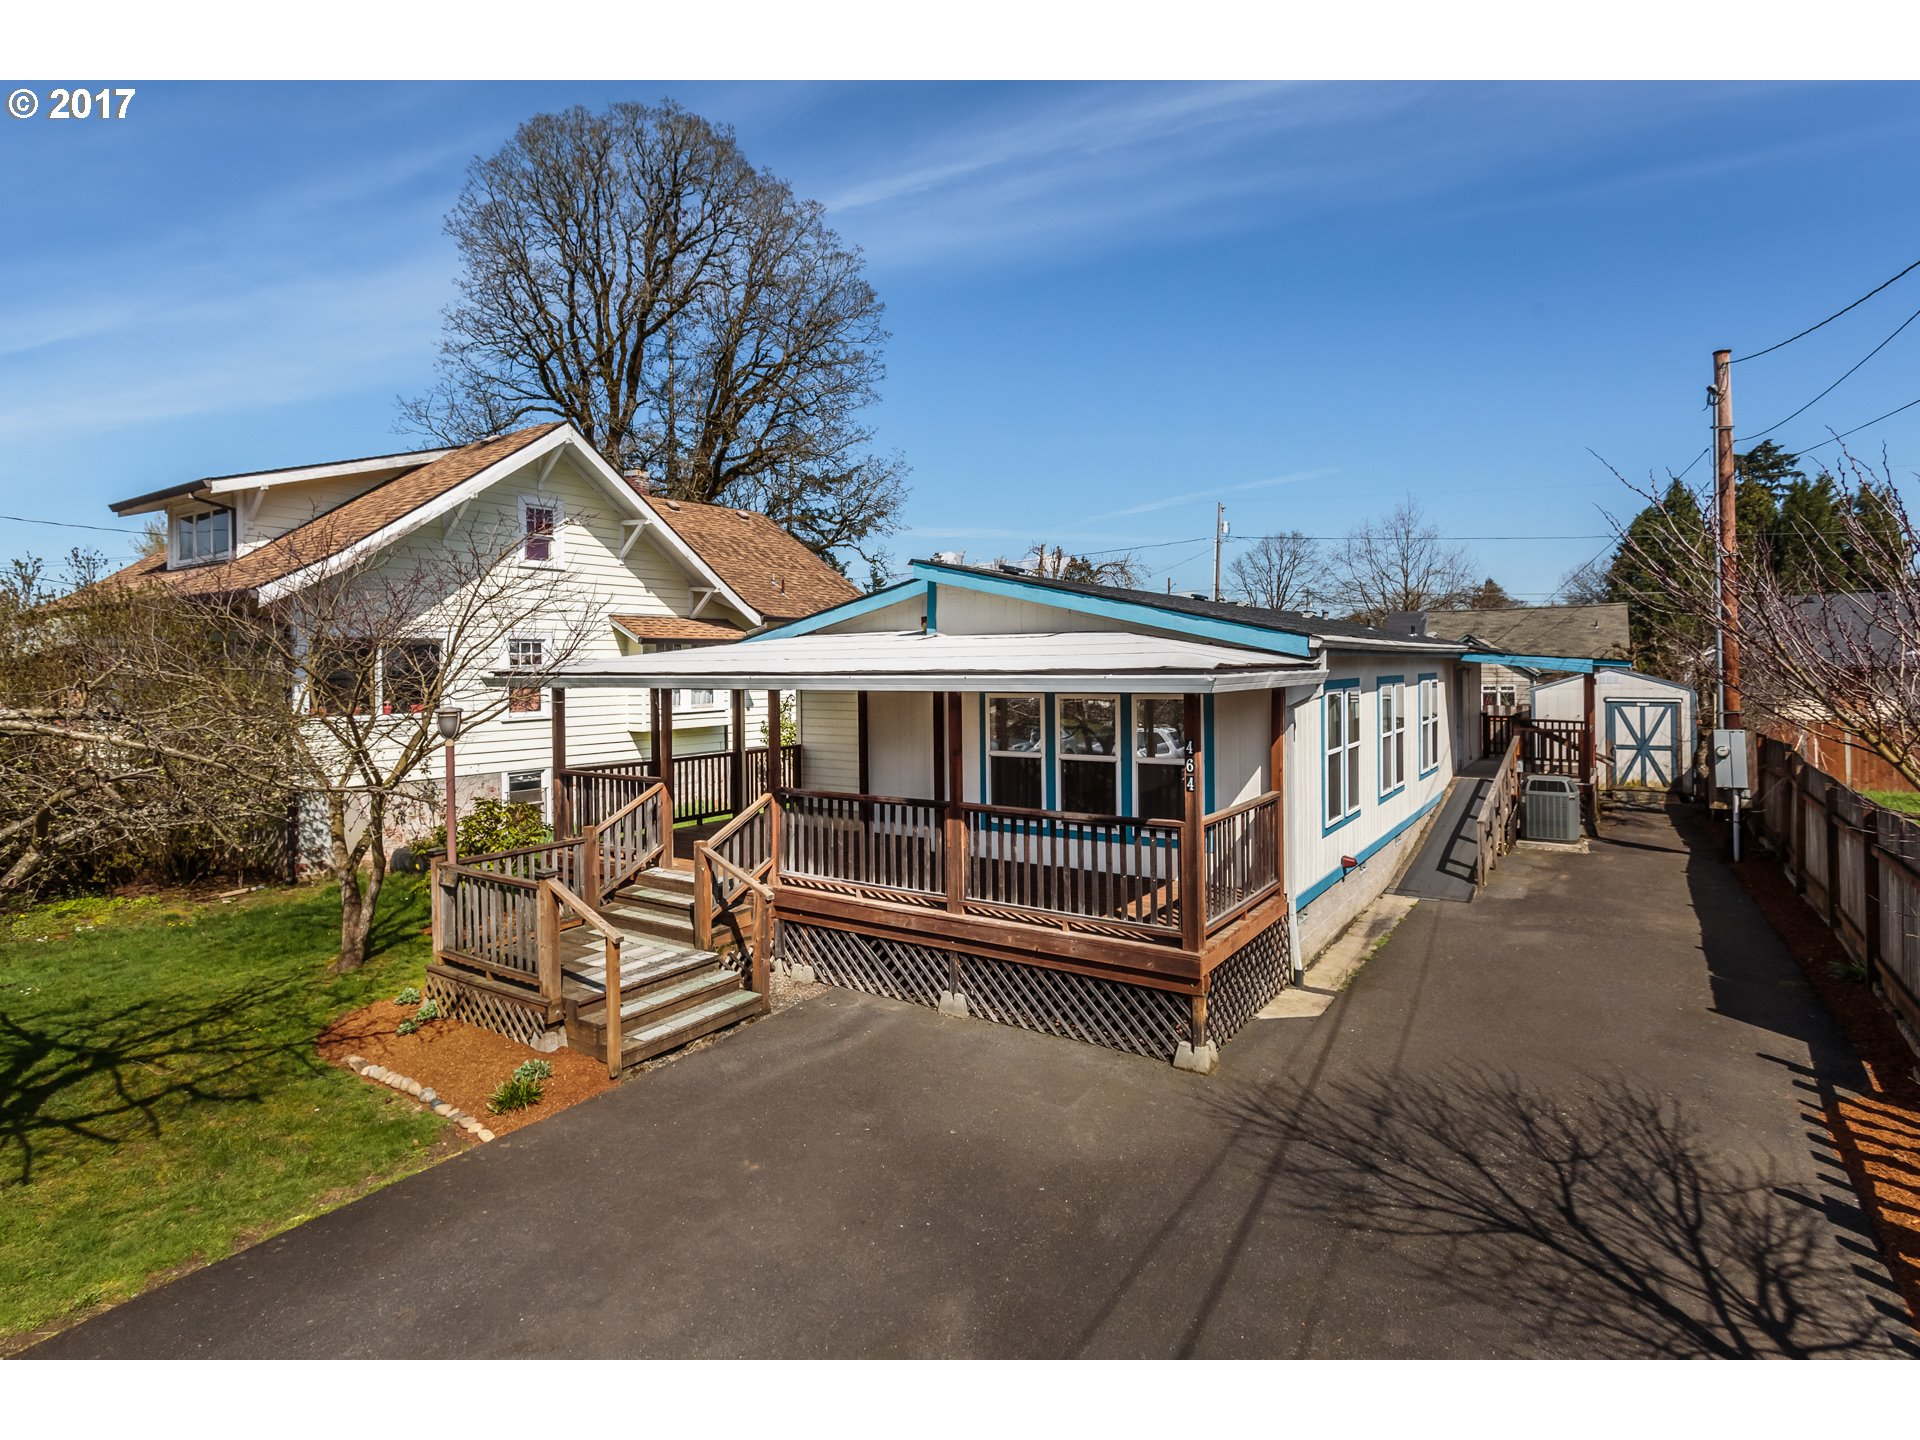 464 N 10TH ST, St. Helens, OR 97051